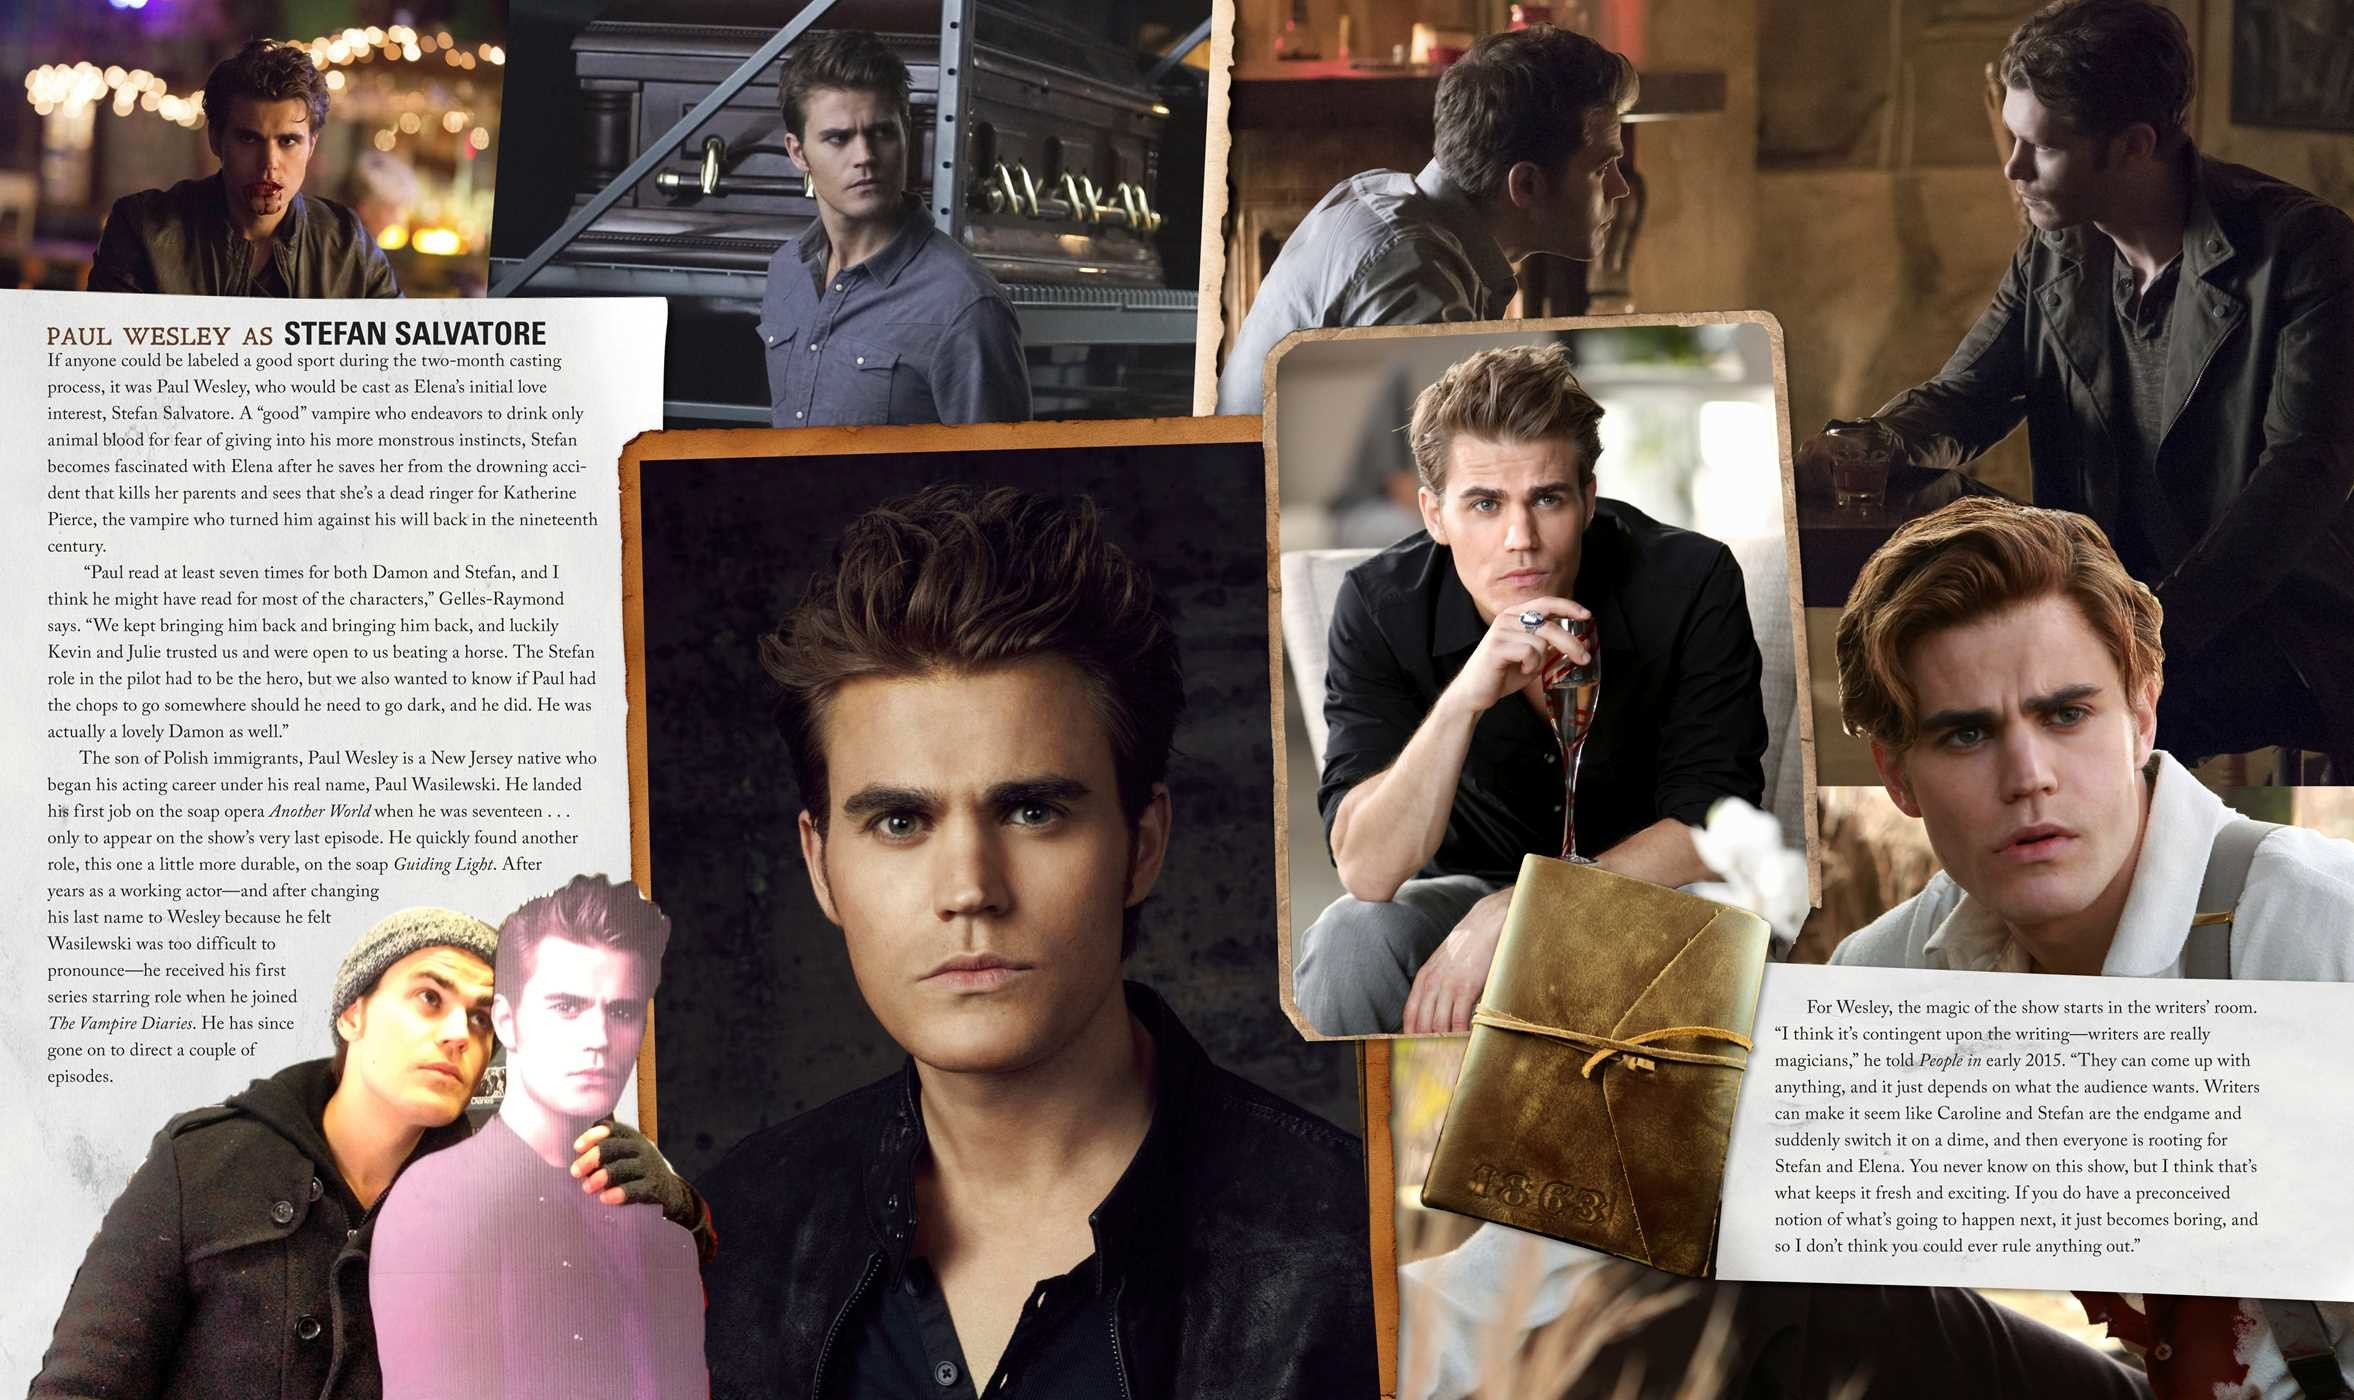 The Vampire Diaries by L.J. Smith series